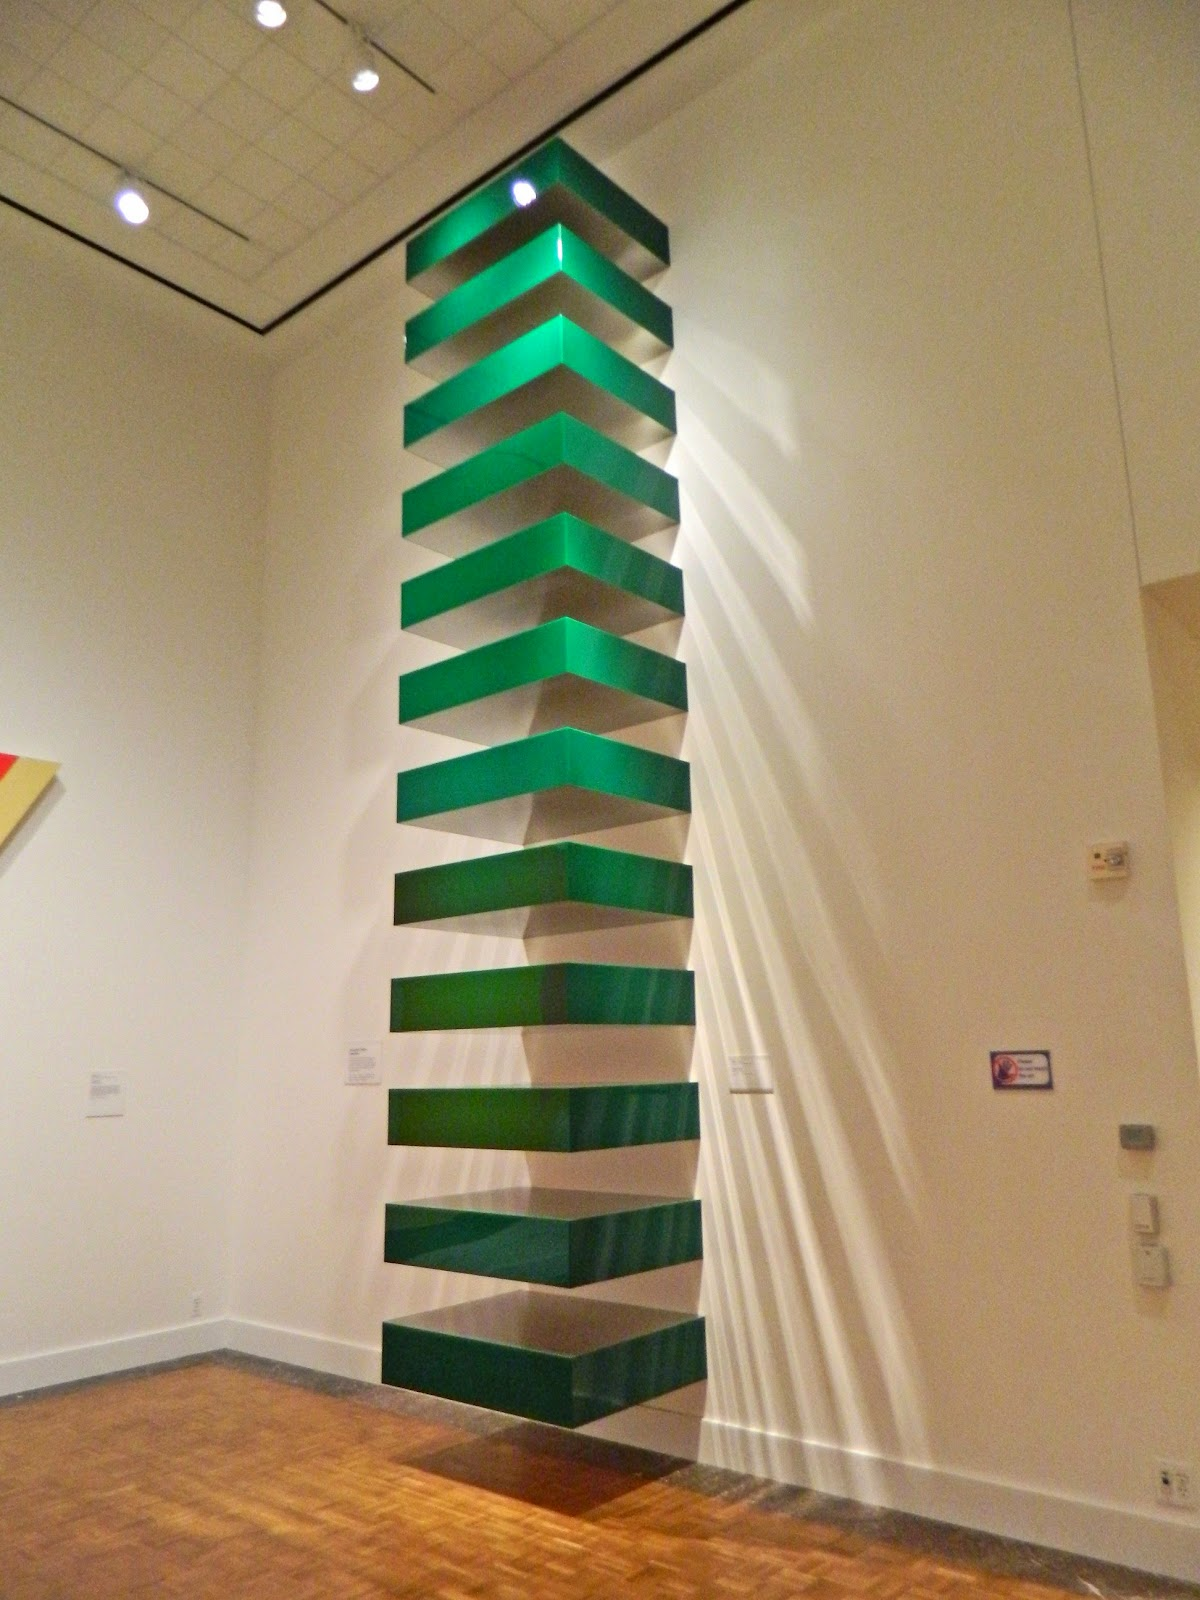 Jax stumpes detroit 2014 iii 7 29 2014 for Donald judd stack 1972